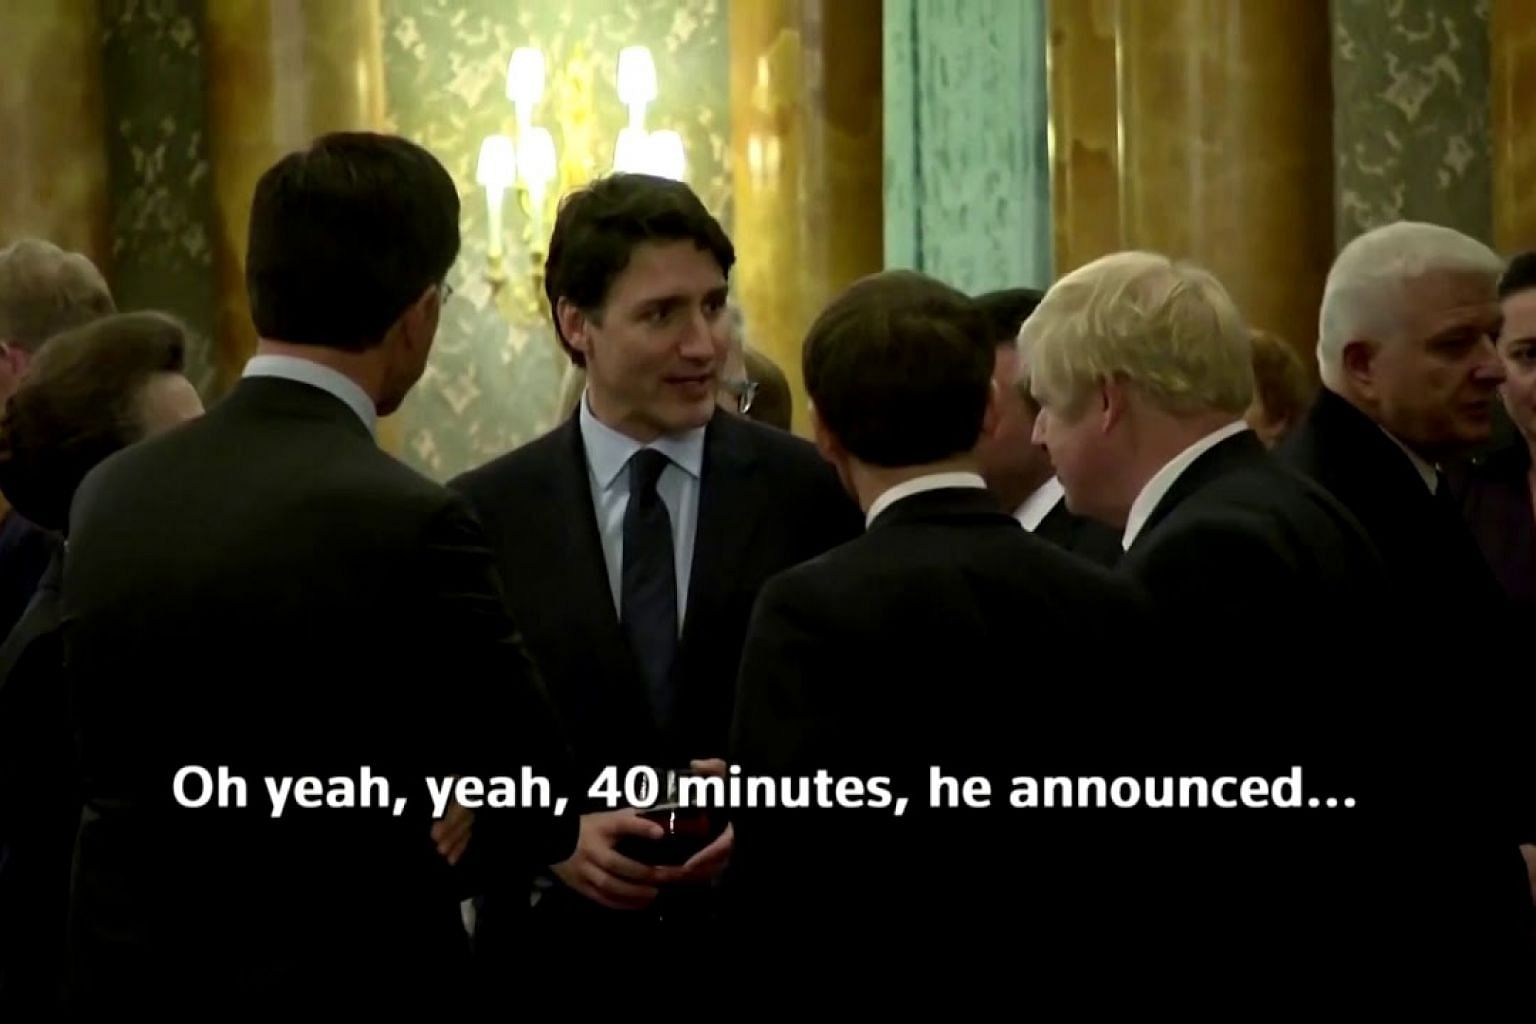 World leaders caught gossiping about Trump